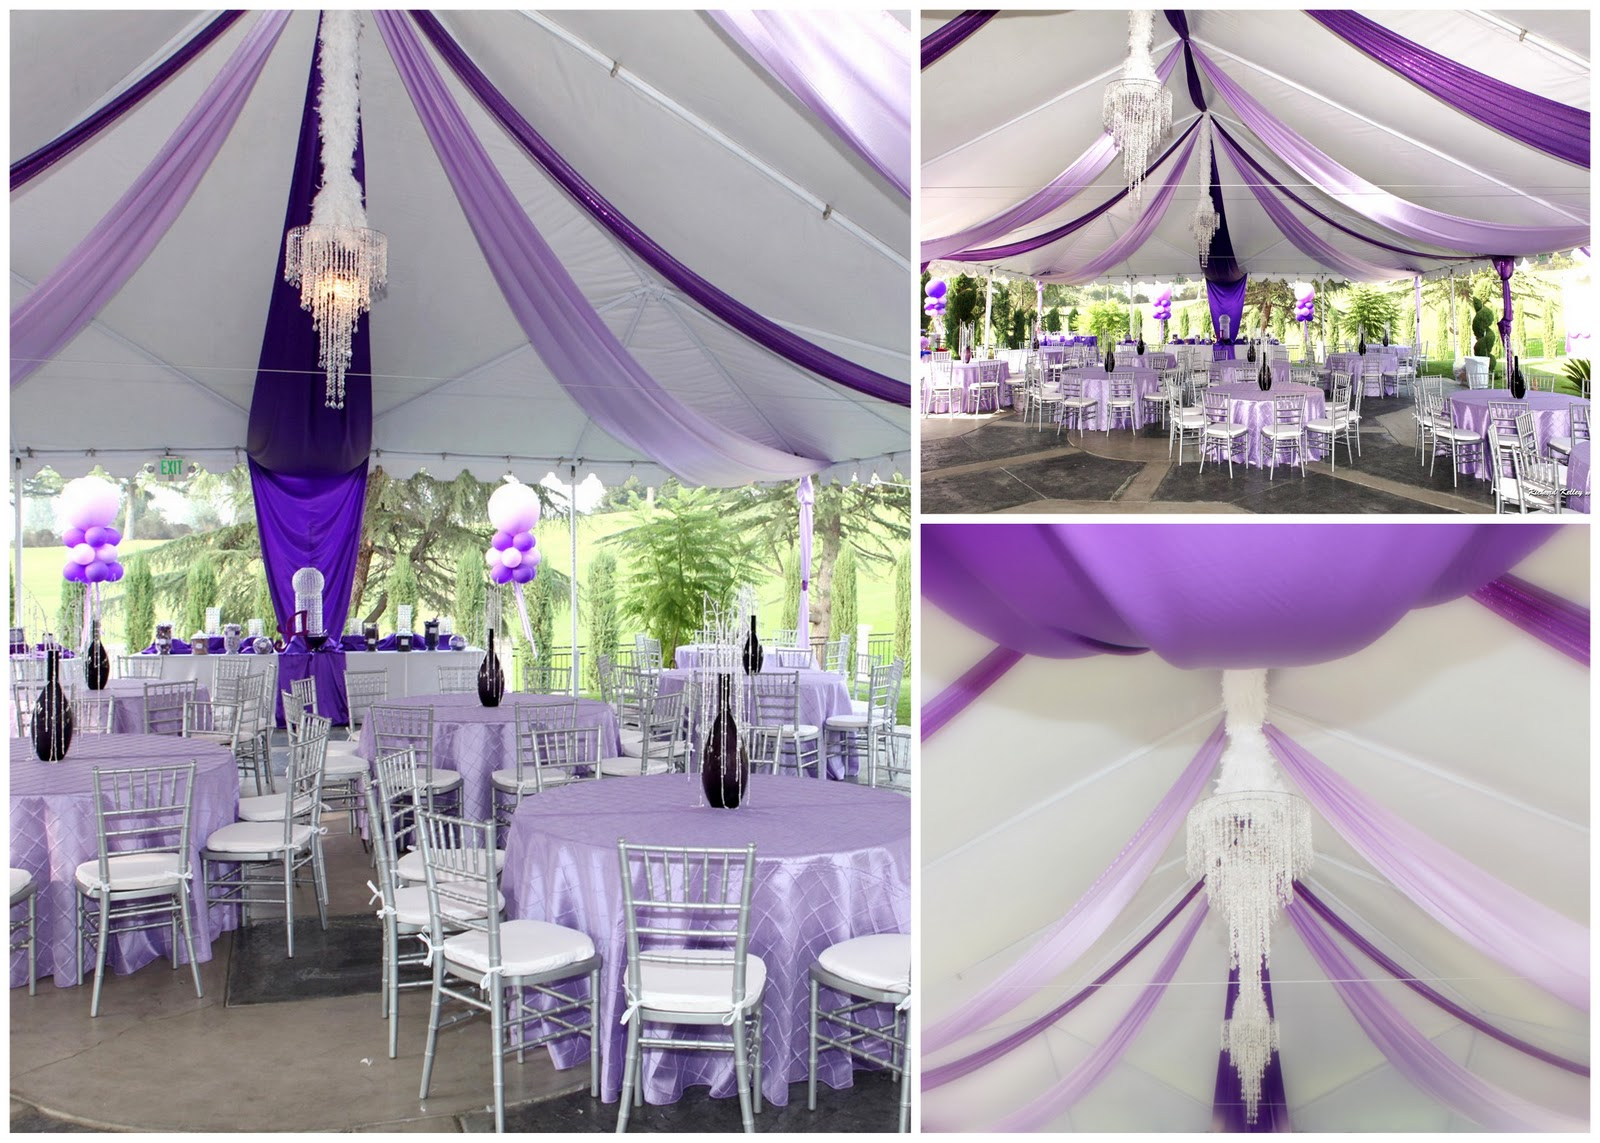 Decorated Wedding Tents Pictures  Chs creative productions purple palooza part iii final post & Decorated Wedding Tents Pictures: Chic wedding tent decoration ...